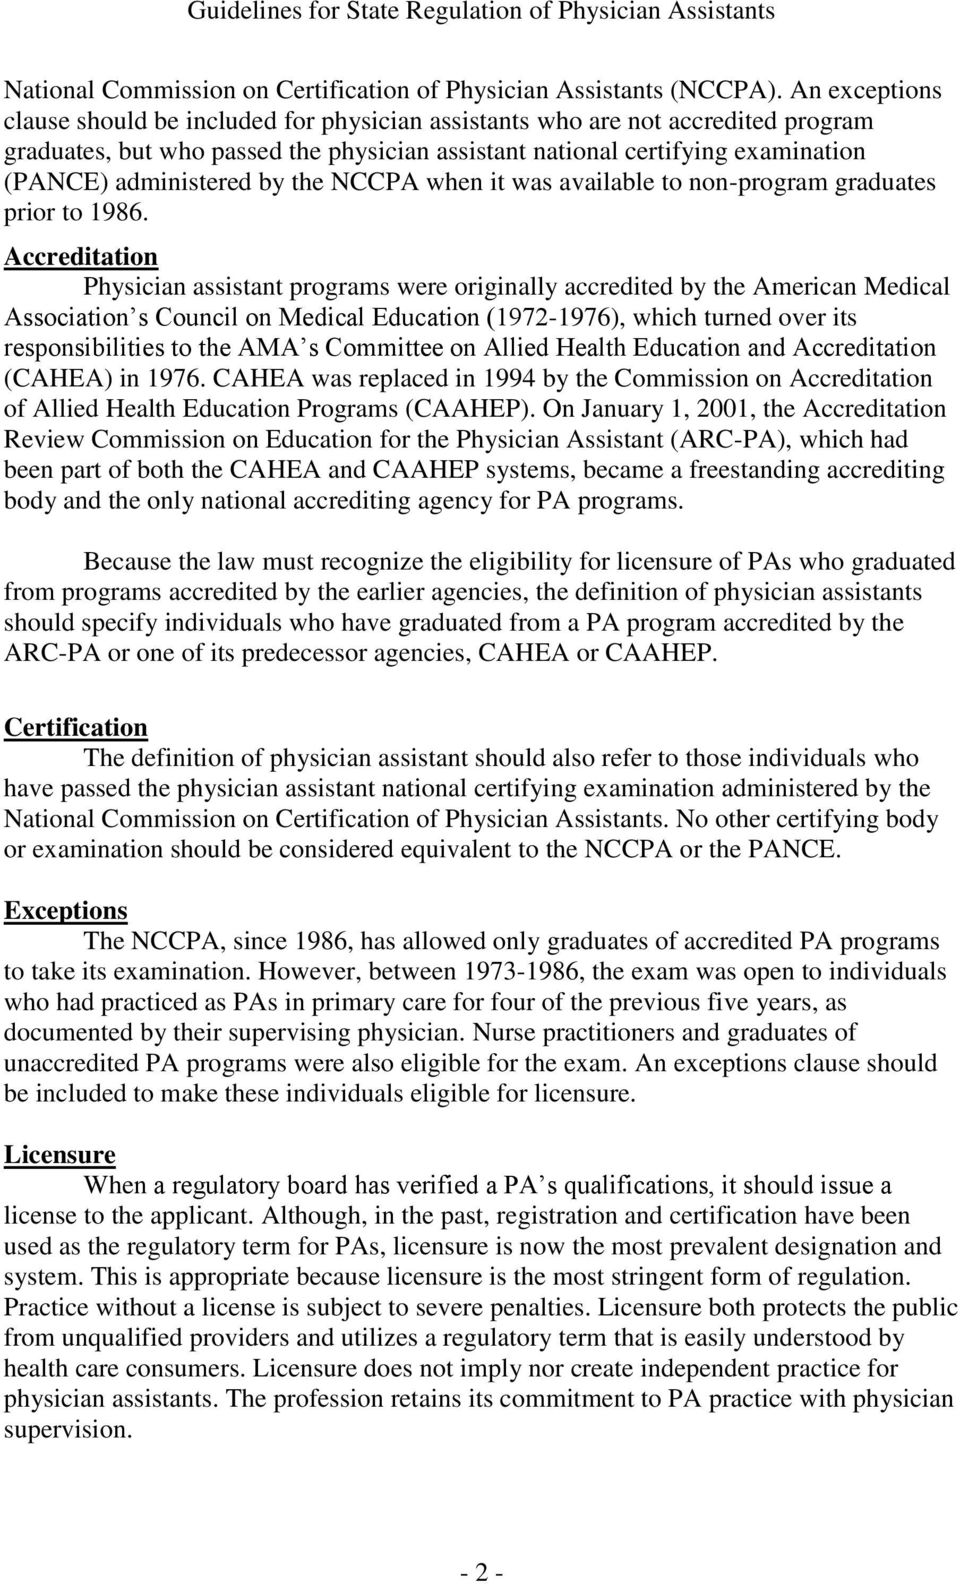 by the NCCPA when it was available to non-program graduates prior to 1986.